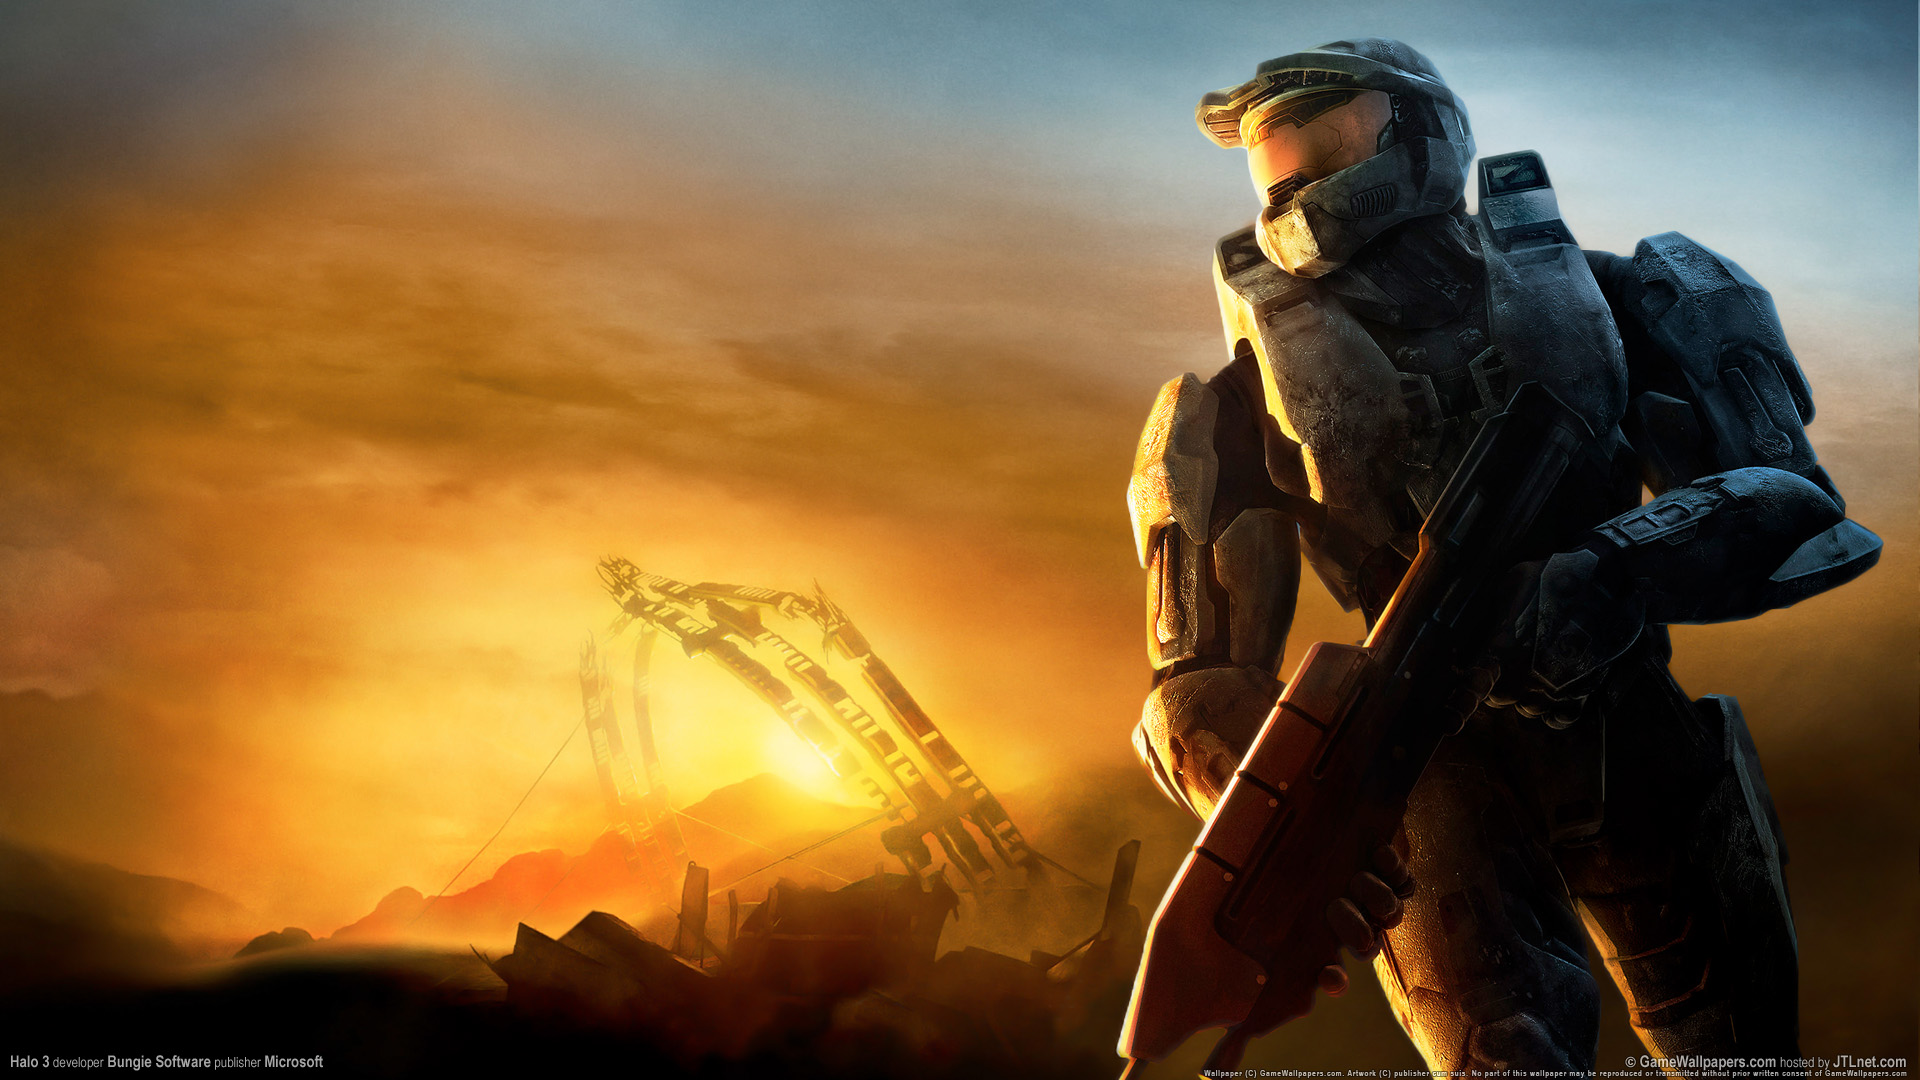 Halo 3, HD Games, 4k Wallpapers, Images, Backgrounds